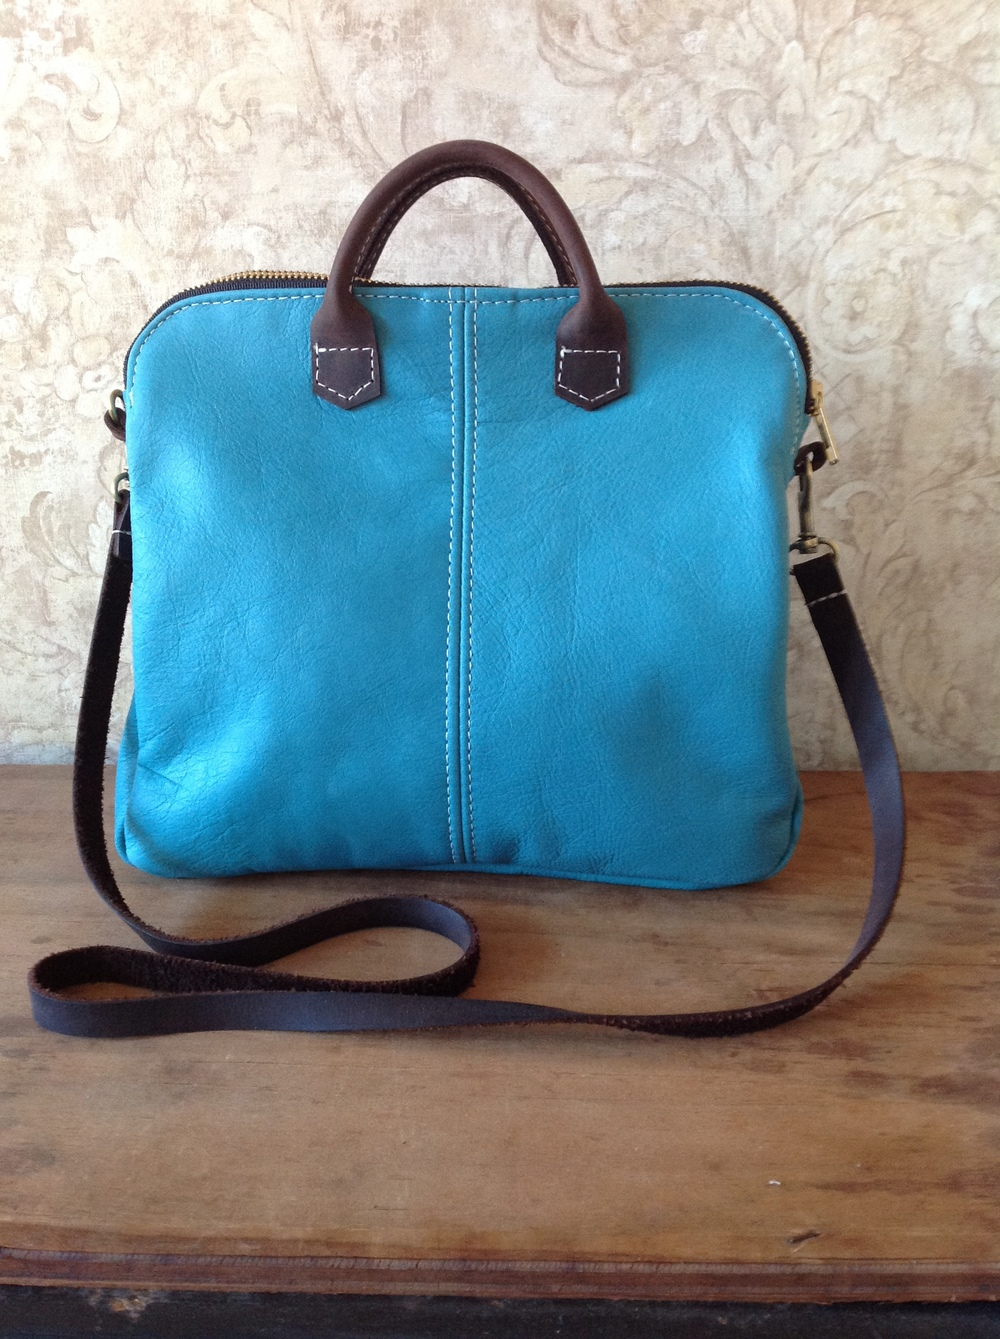 The Mini bag has a removable cross body strap, as well as, 2 small handles at the top.